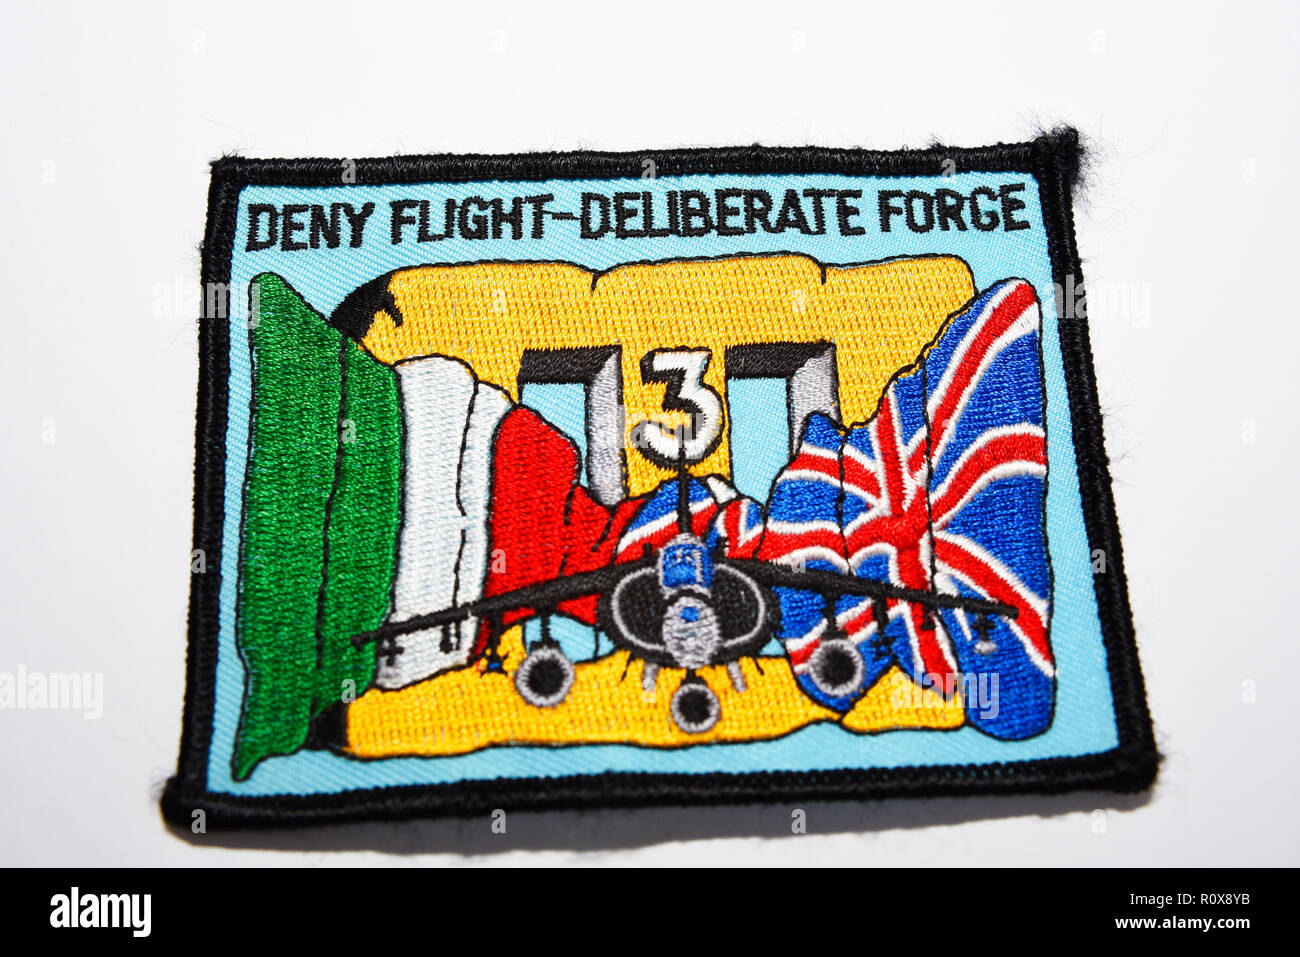 Operation Deny Flight Operation Deliberate Force aviation patch. Aircraft collectible item. RAF 3 Squadron Harrier. Isolated on white background - Stock Image